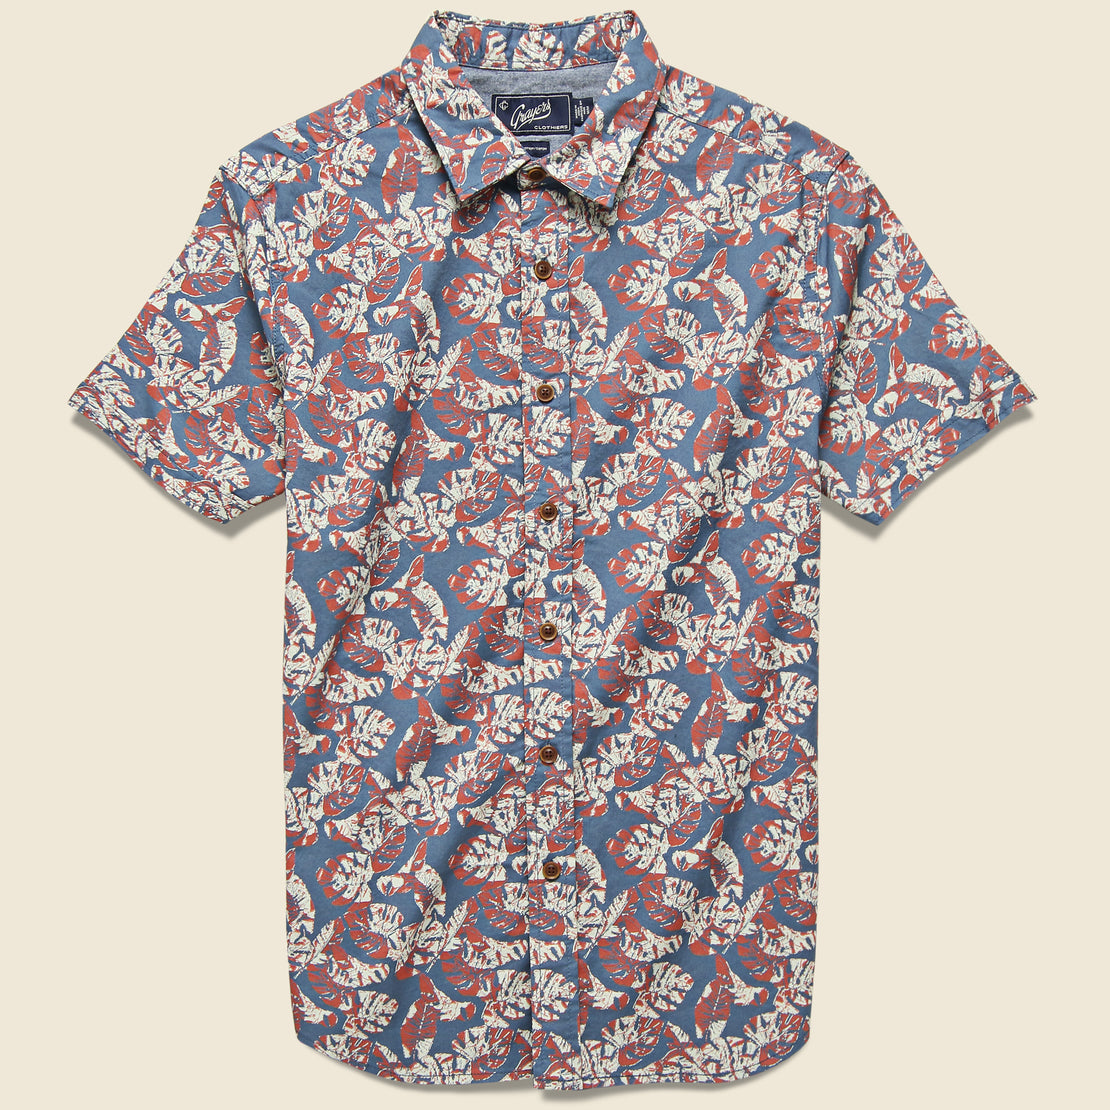 Grayers Floral Printed Gauze Shirt - Faded Navy/Red/Cream